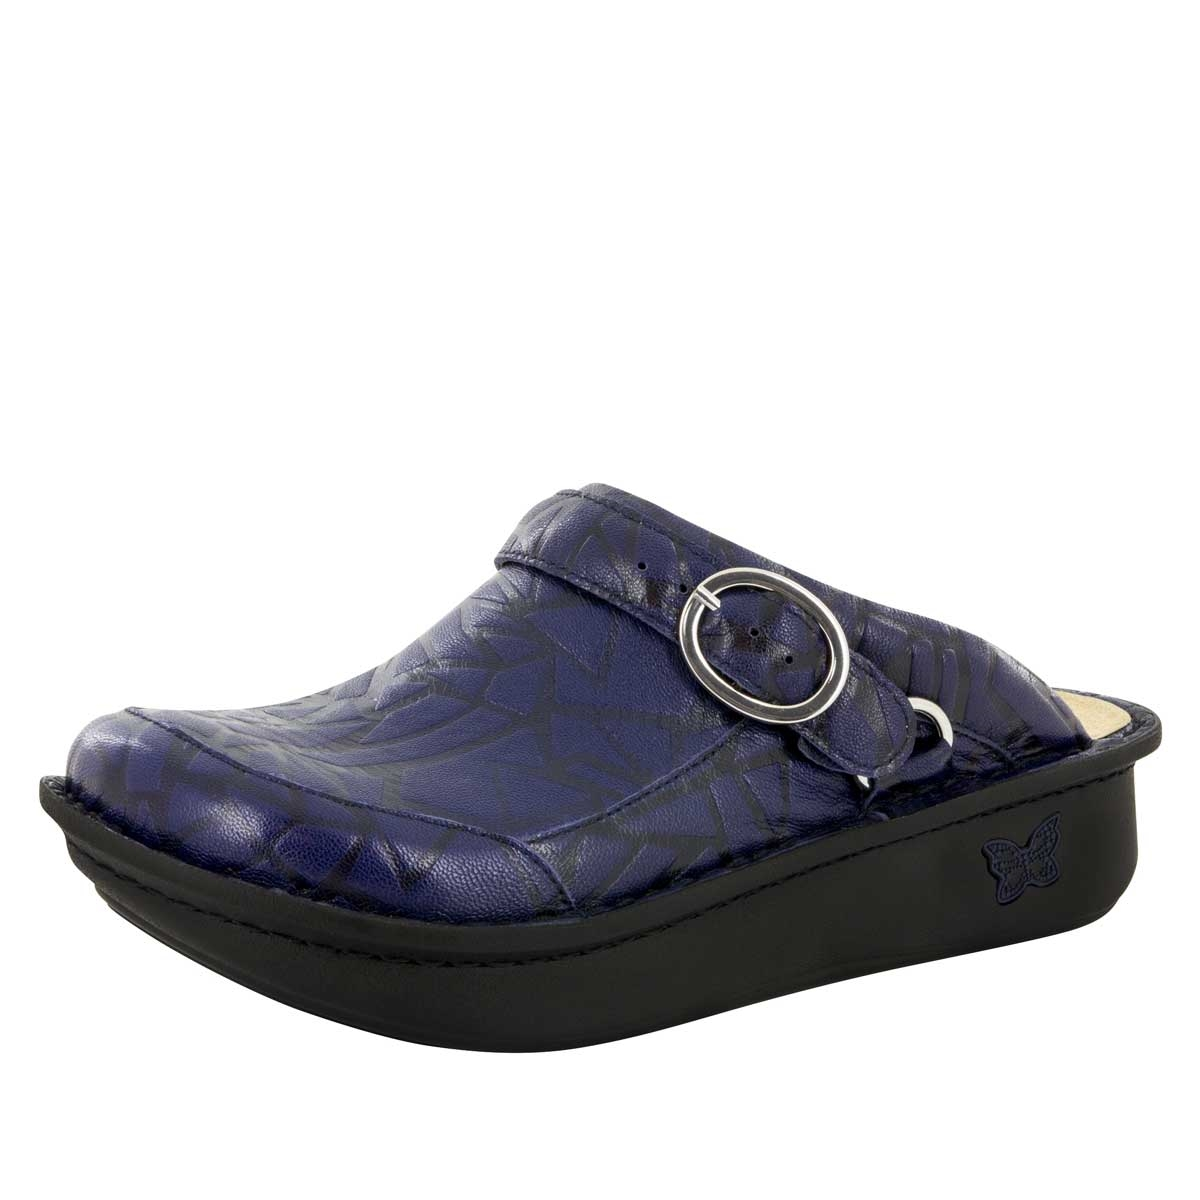 Nurse AlegriaSeville Tetrus Blue The Nurse AlegriaShoe